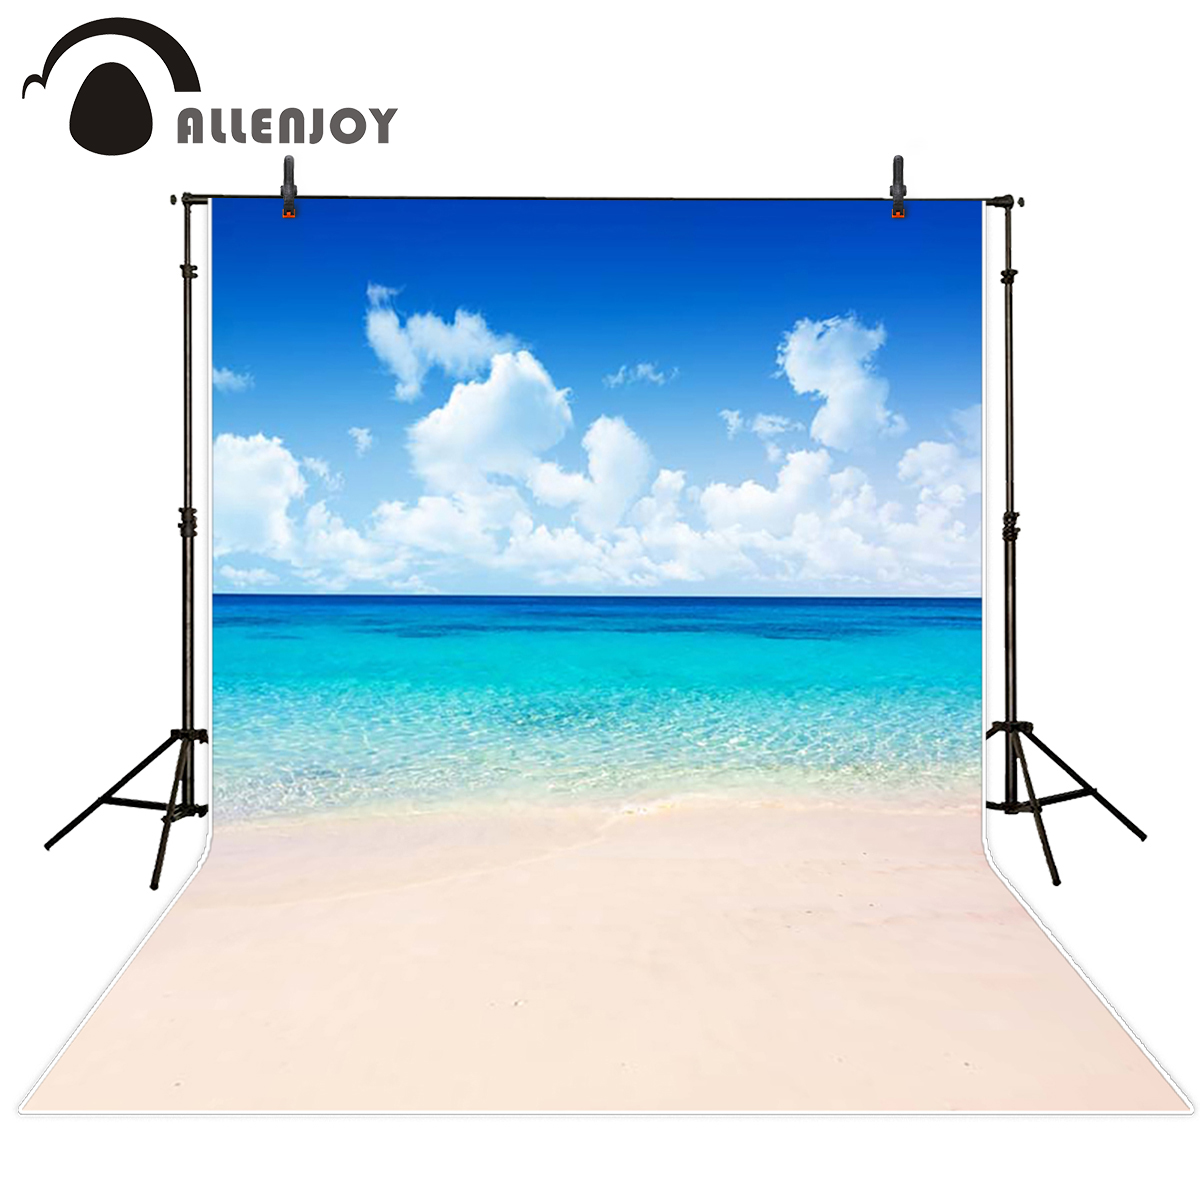 Allenjoy scenery photo backdrop Beautiful seawater cool and refreshing backgrounds for photo studio background vinyl цена